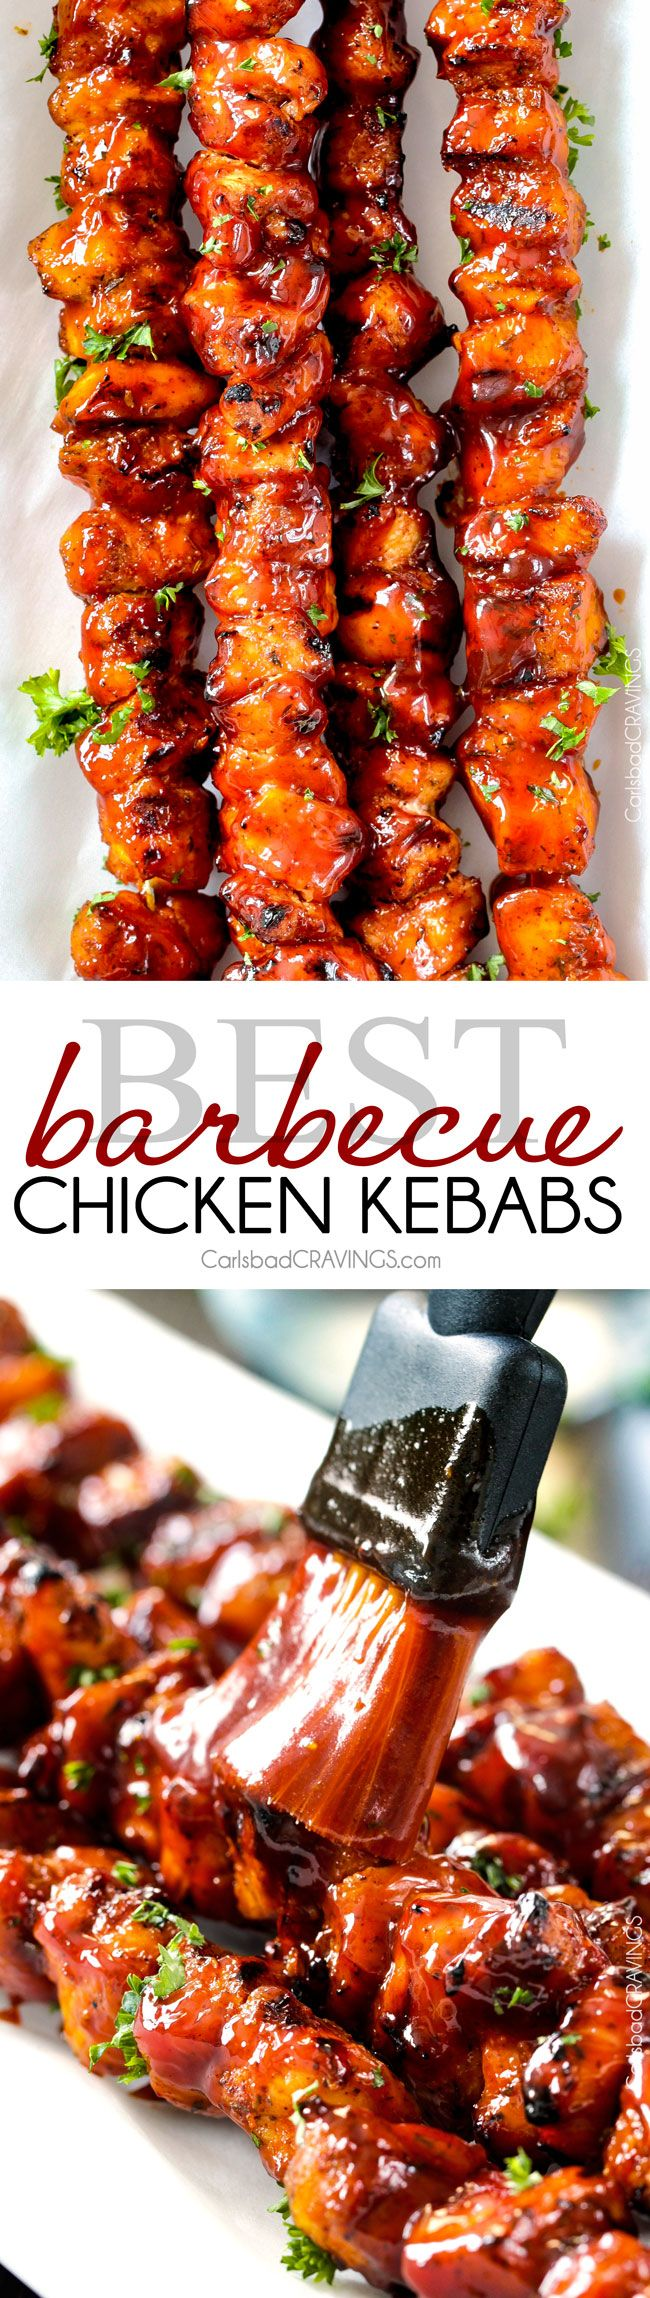 These BBQ Chicken Kebabs are my go-to grill recipe with the most amazing barbecue sauce! Everyone always asks me for the recipe and they are easy too!